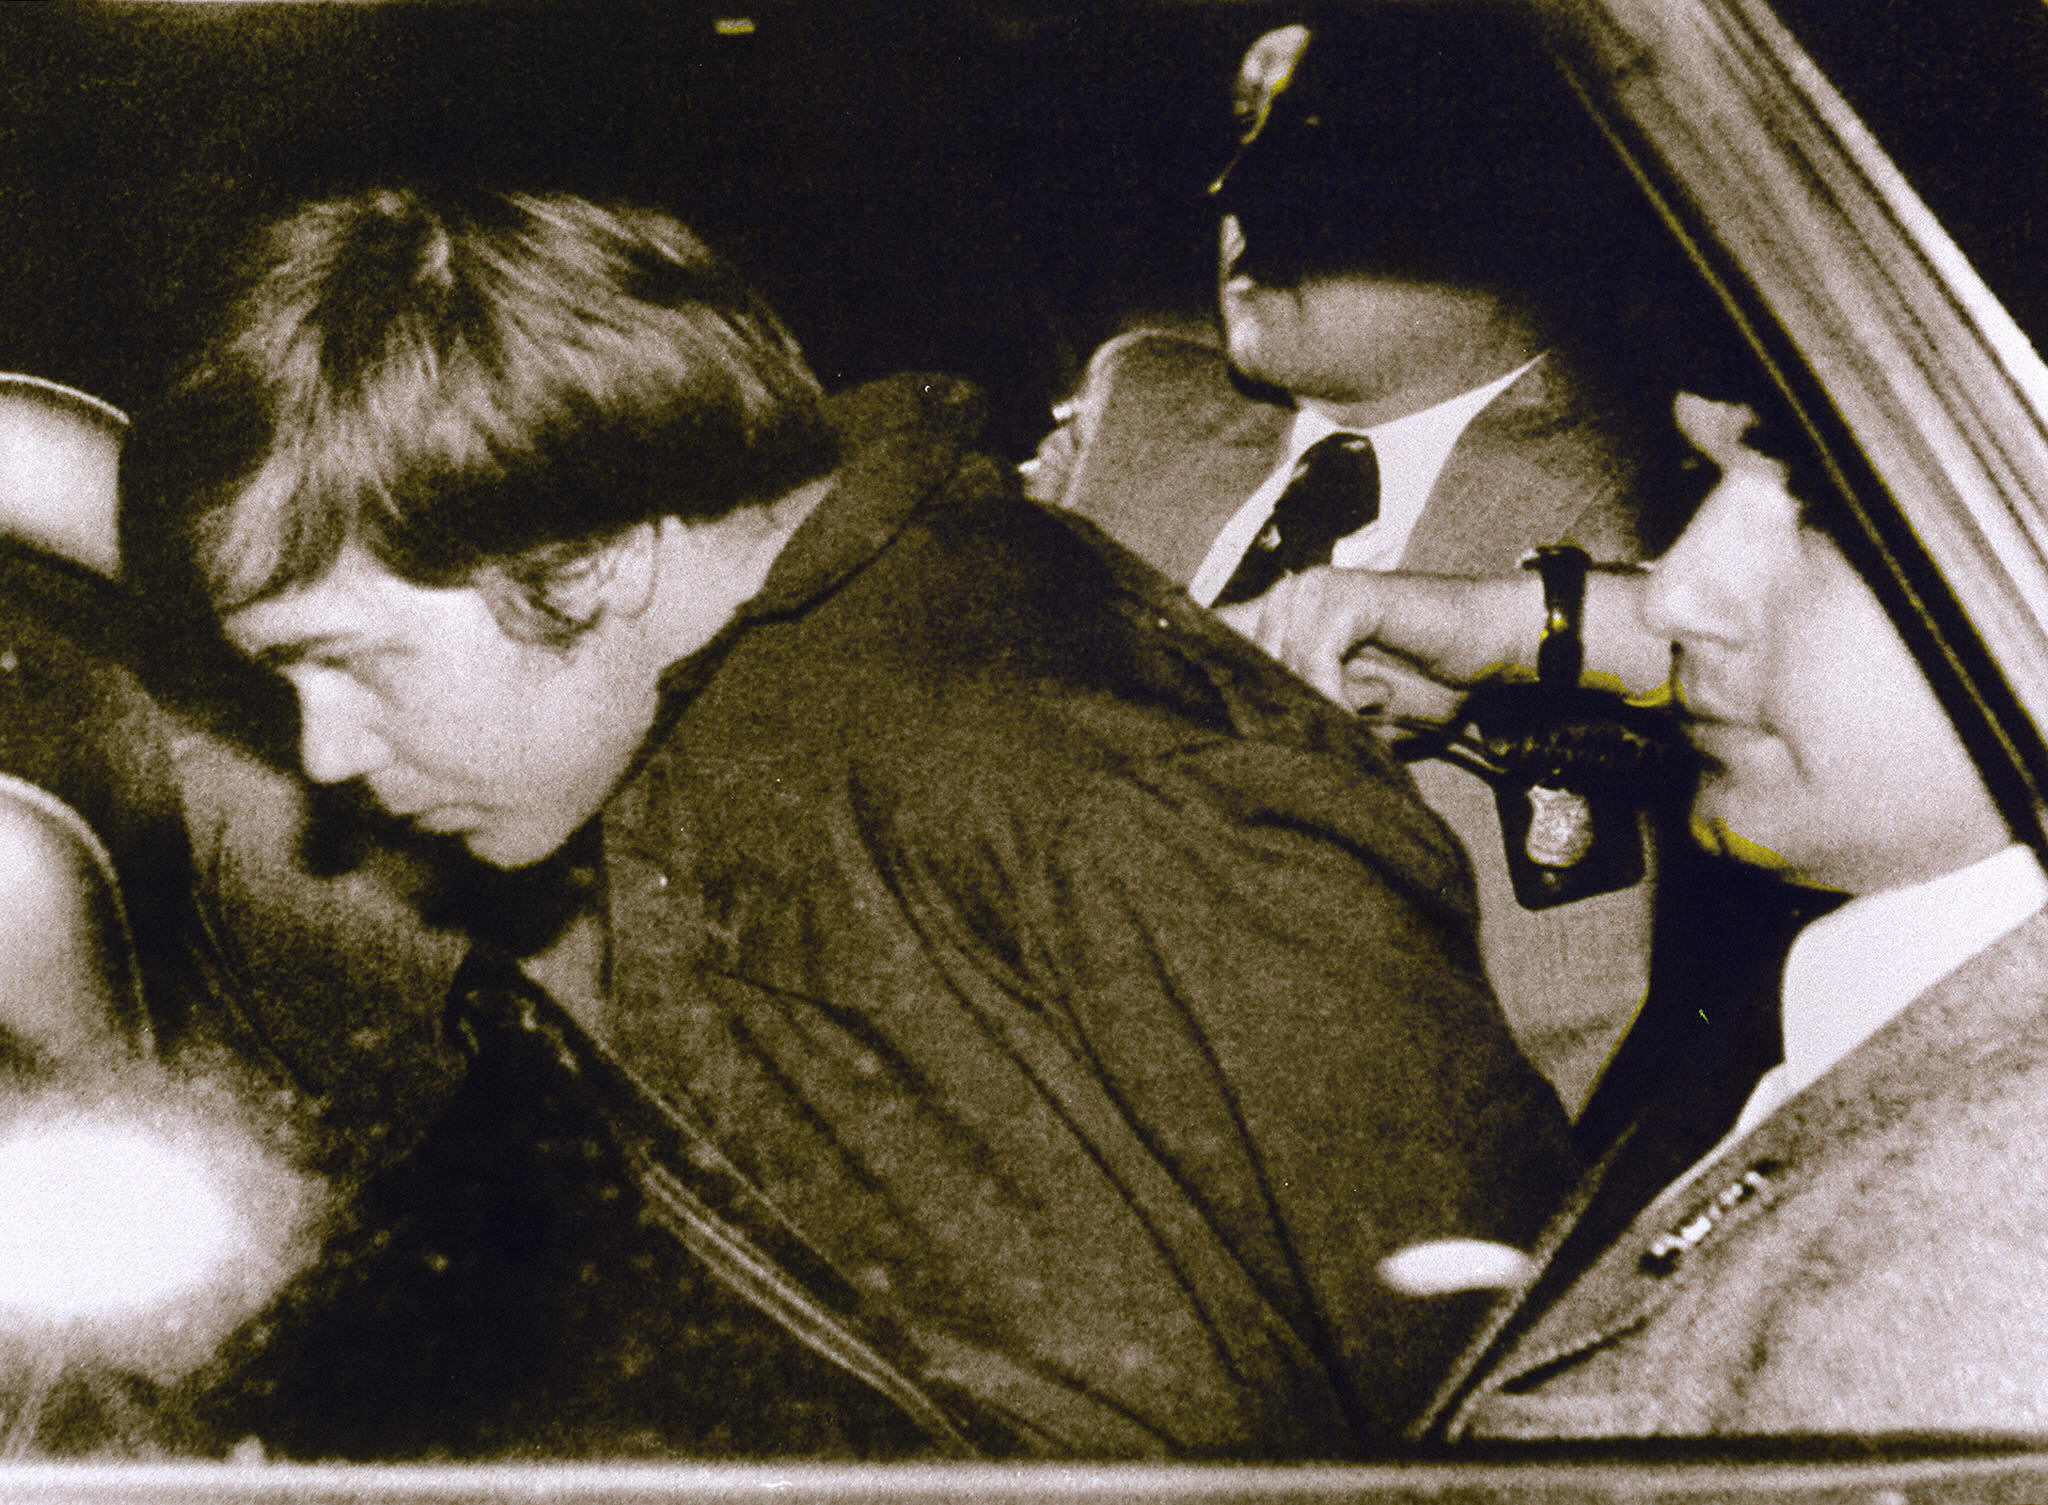 This 30 March 1981 file photo shows John Hinckley Jr. (L) escorted by police in Washington, DC, following his arrest after shooting and seriously wounding then US president Ronald Reagan.  A federal judge ruled 17 December 2003 Hinckley can make local visits with his family from St. Elizabeth's Hospital in Washington, DC, where he has been held.     AFP PHOTO/FILES   Photo credit AFP/Getty Images